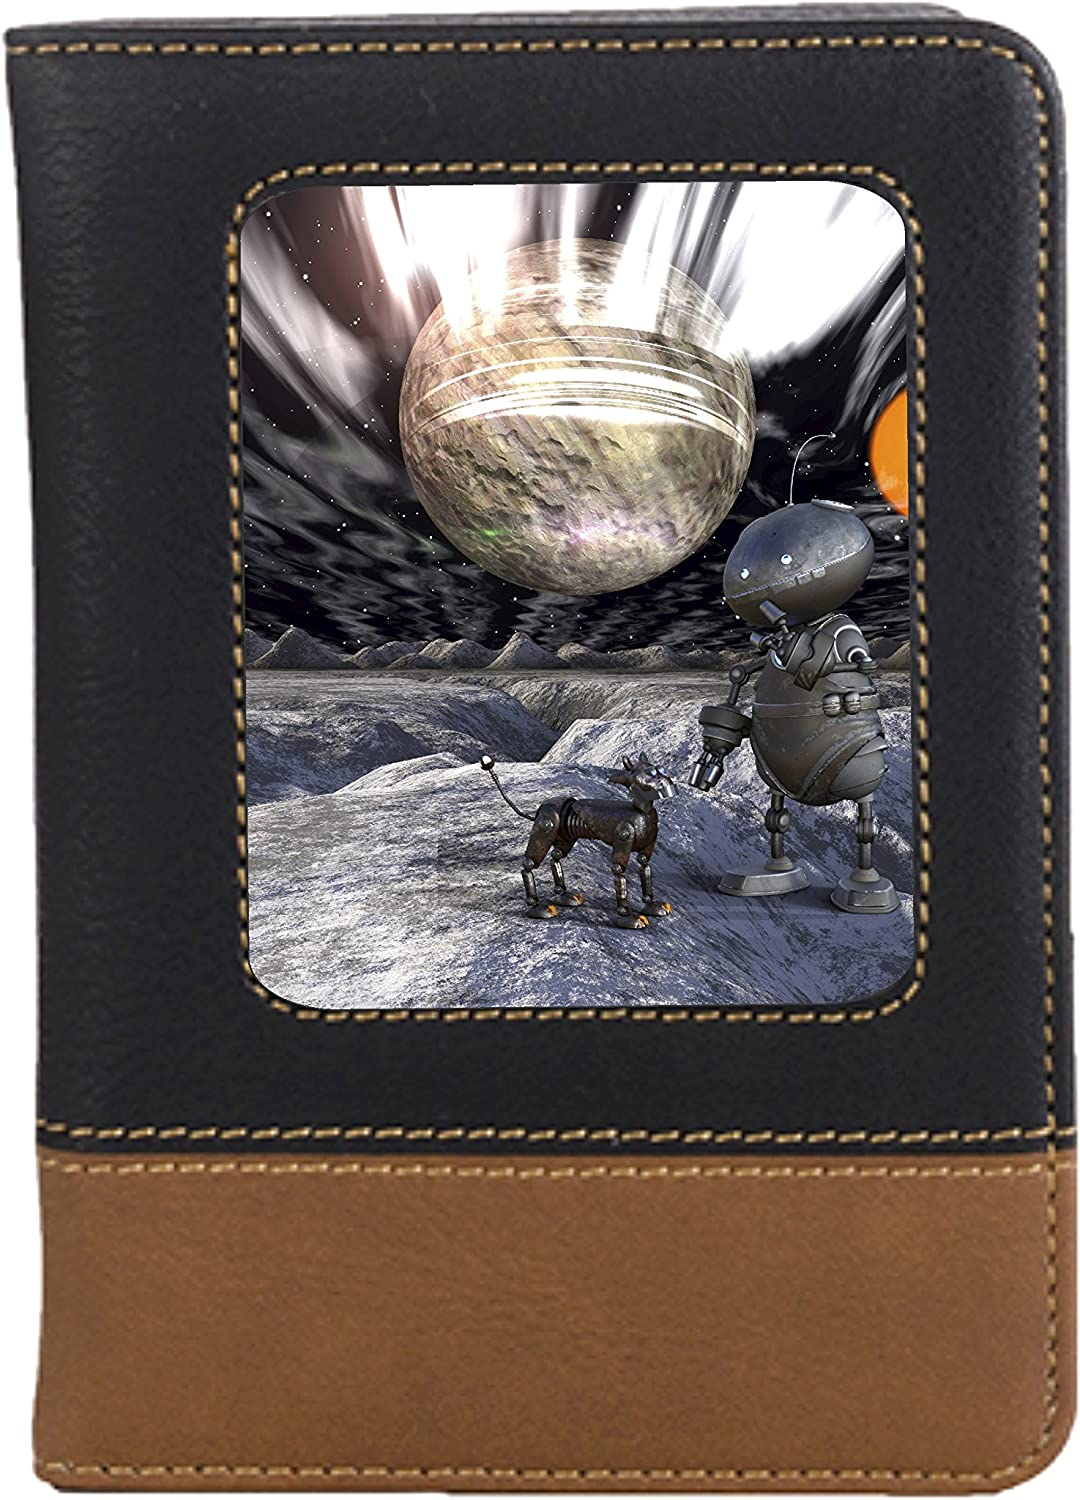 Robot /& Dog in Space Leatherette Passport Wallet Style Case Cover For Travel